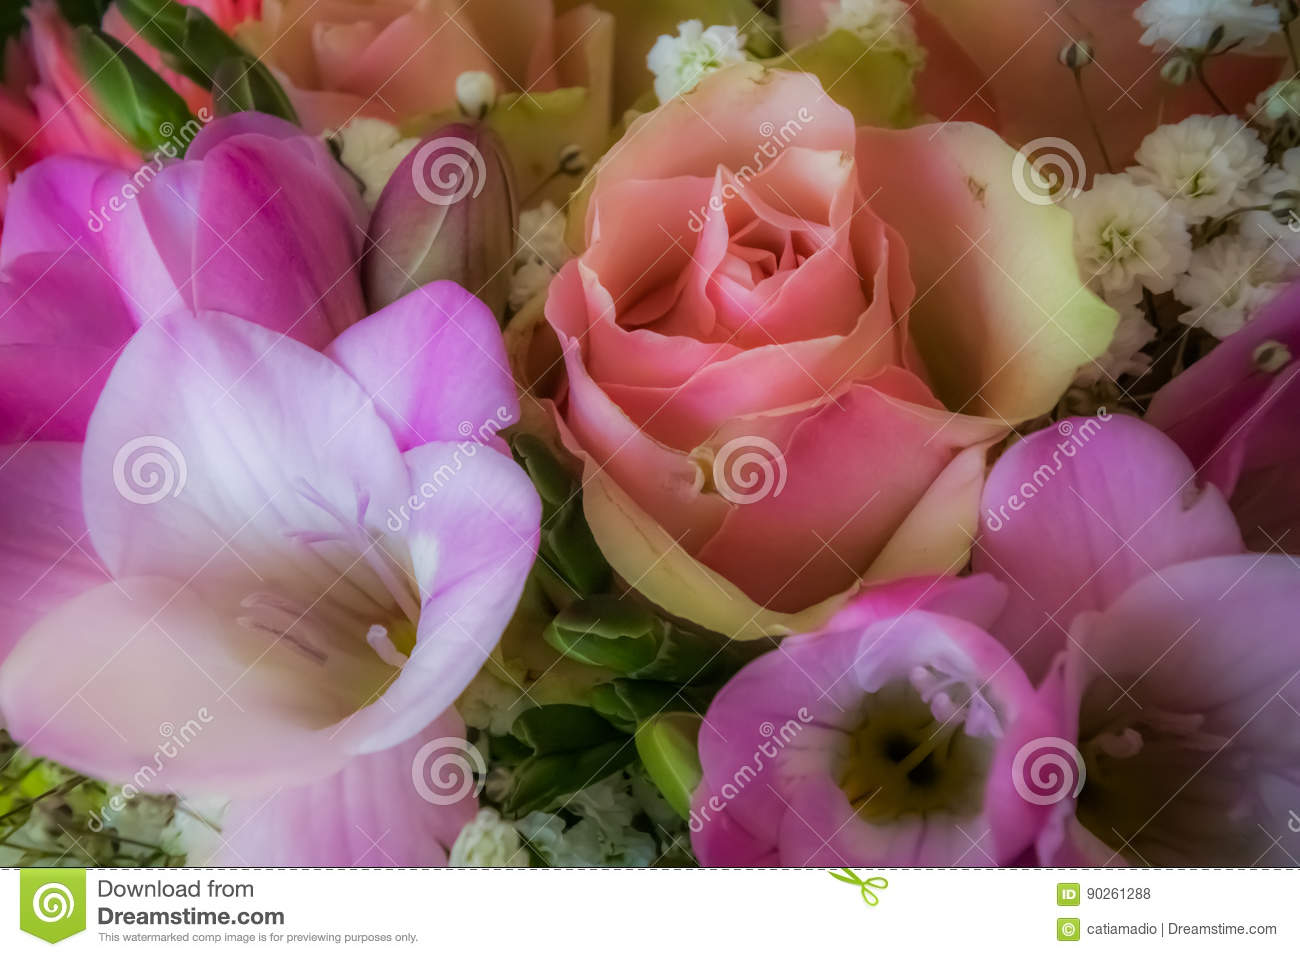 Soft pink flowers background